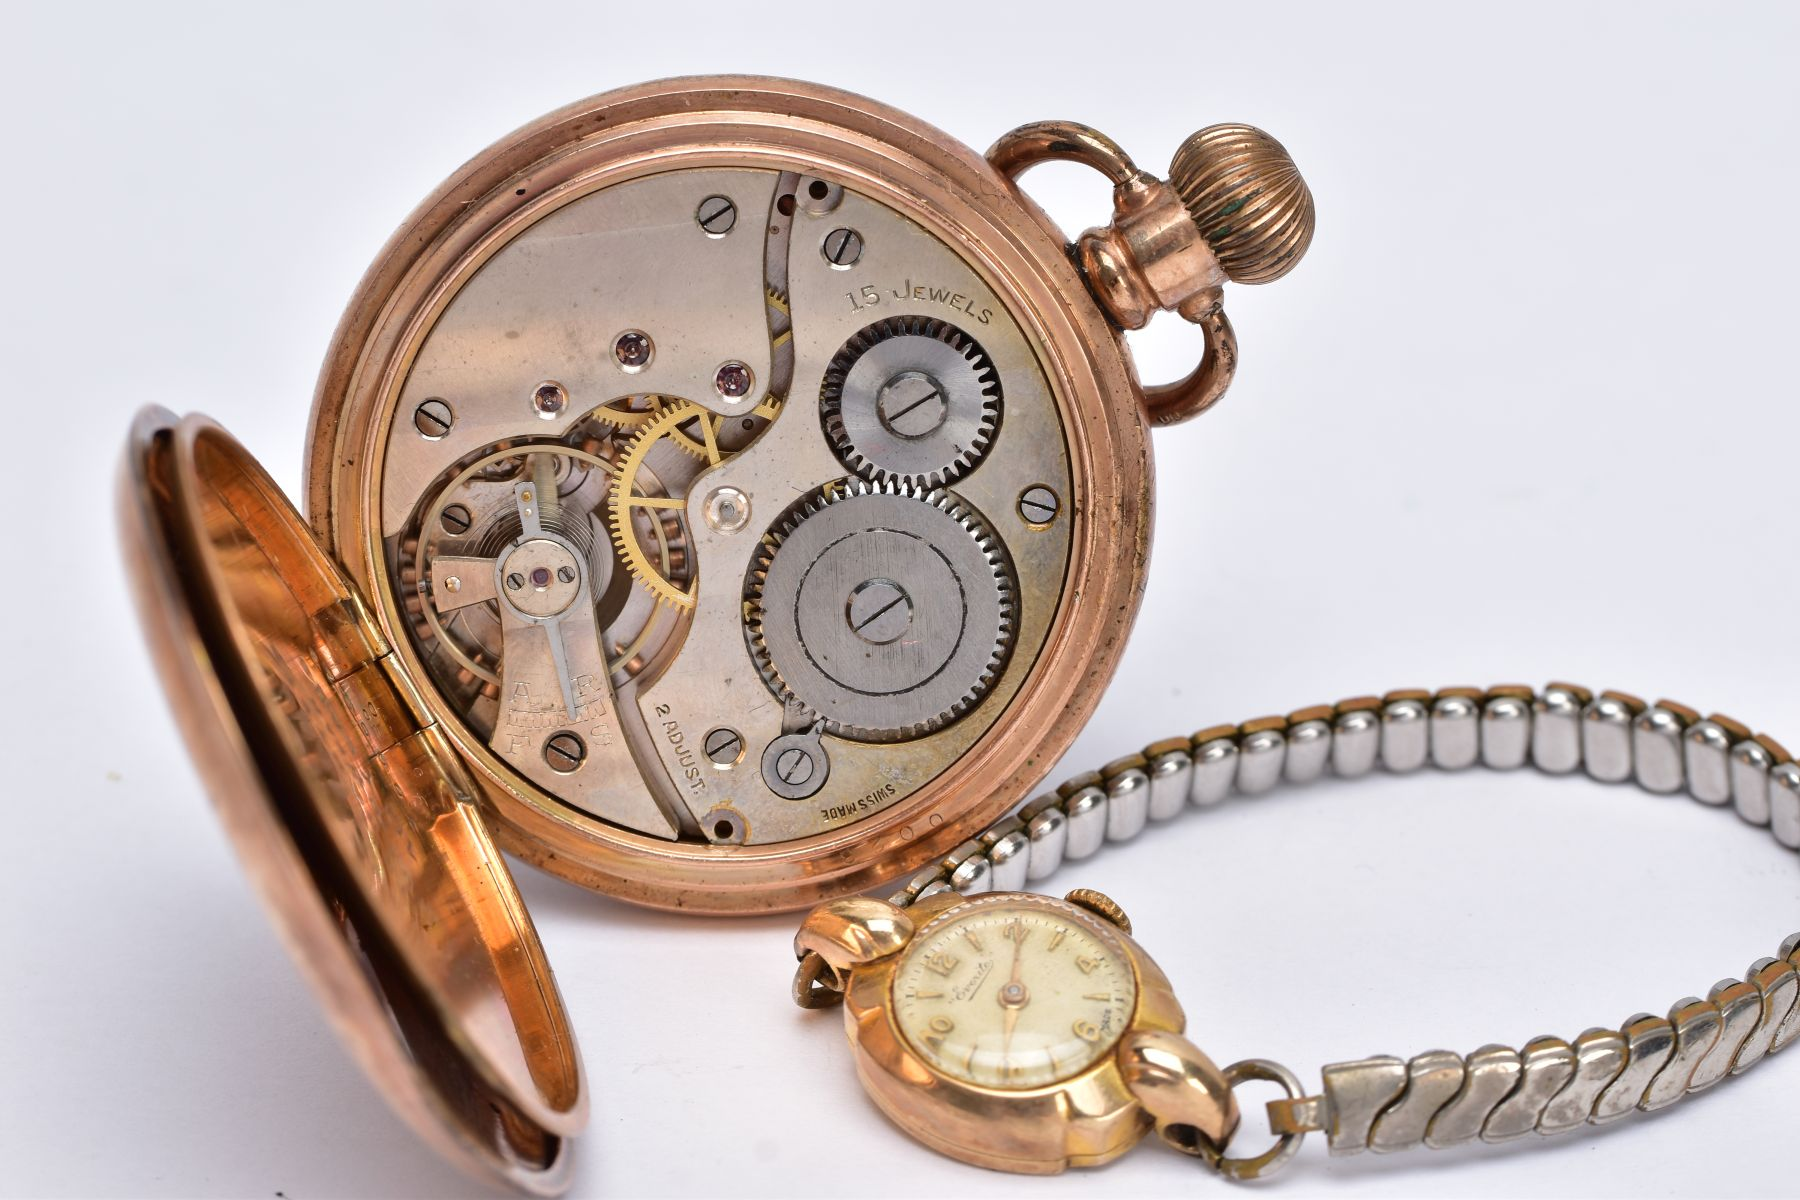 A LADIES 9CT GOLD CASED WRISTWATCH AND A GOLD PLATED POCKET WATCH, the ladies wristwatch with a - Image 5 of 5